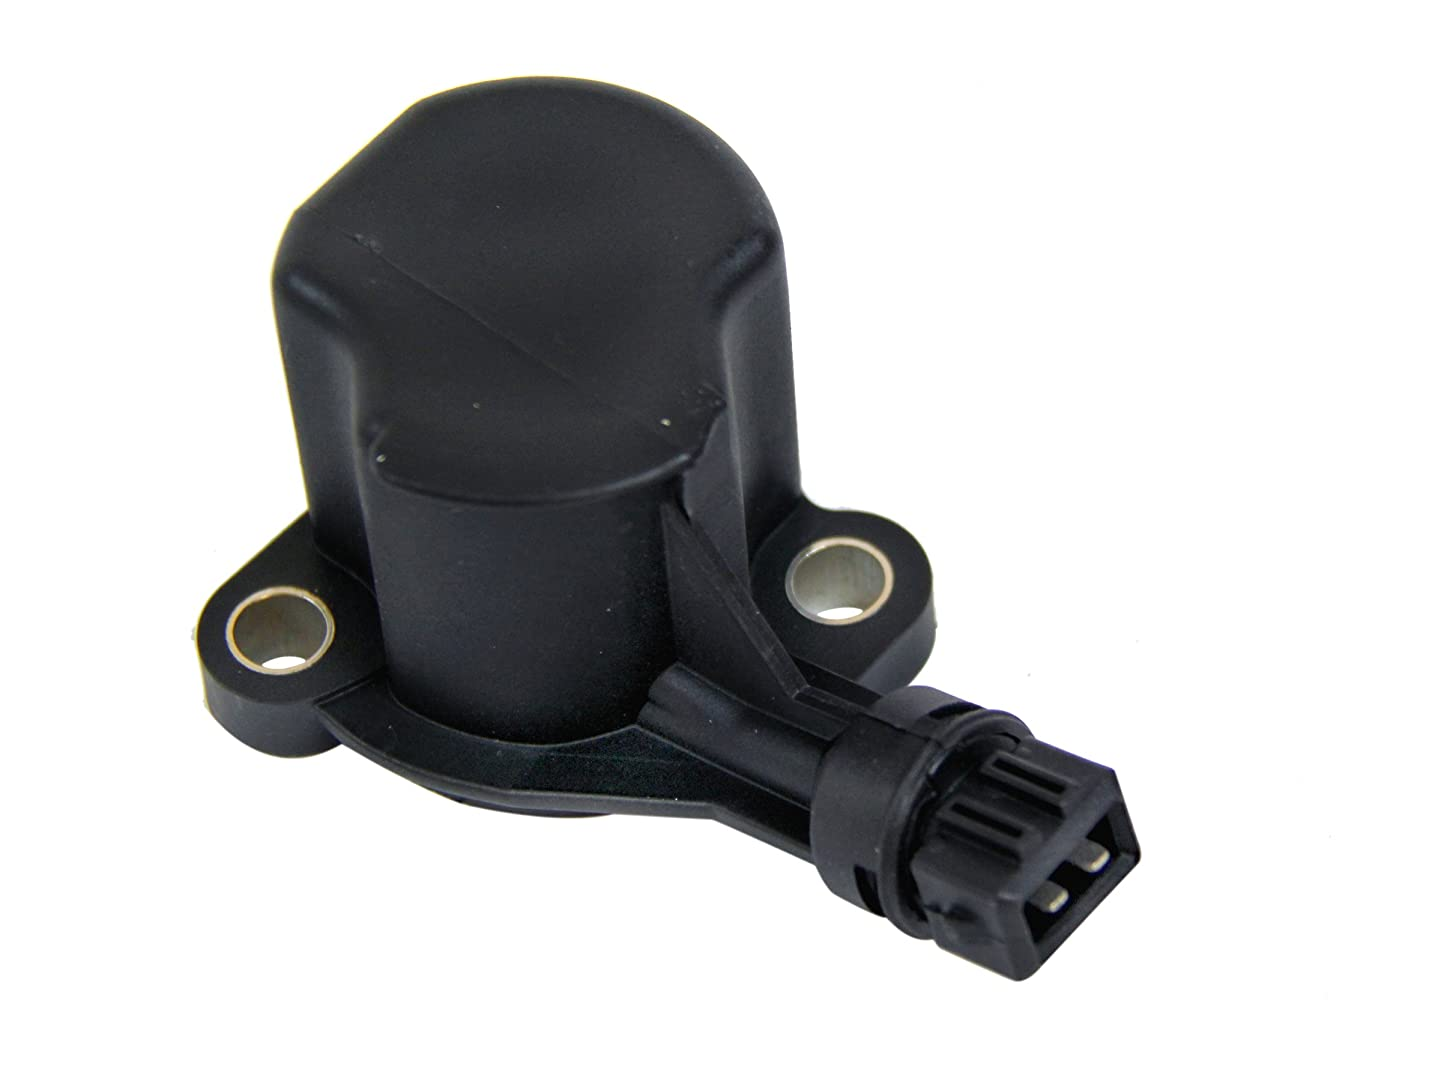 MTC 4637 / 02A-945-413C Back Up Light Switch (02A-945-413C MTC 4637 for Audi/Volkswagen Models)